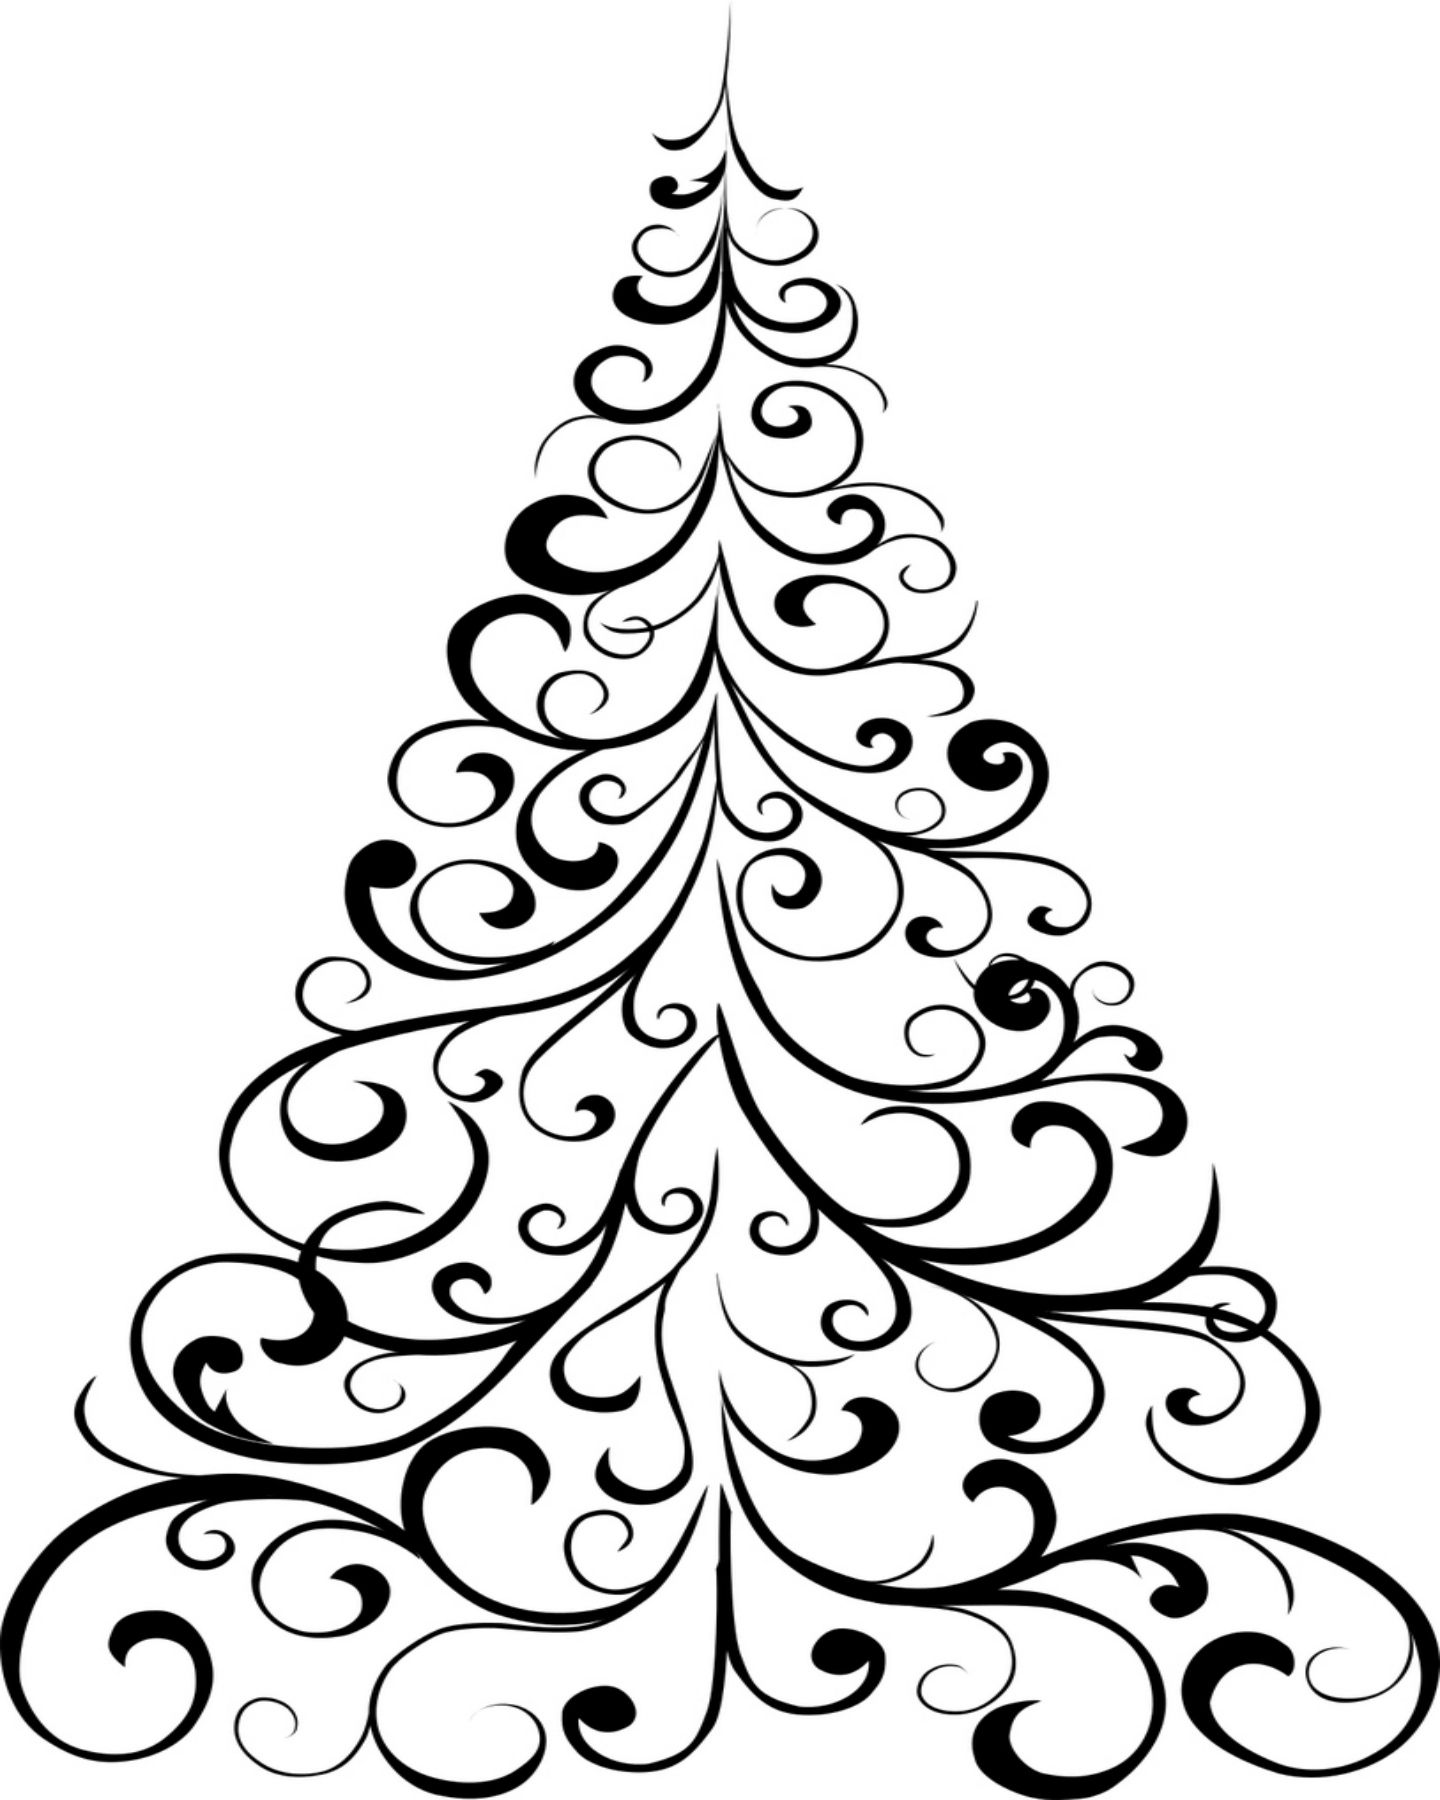 Free Printable Christmas Tree Coloring Page | Holly Jolly X-Mas in ...